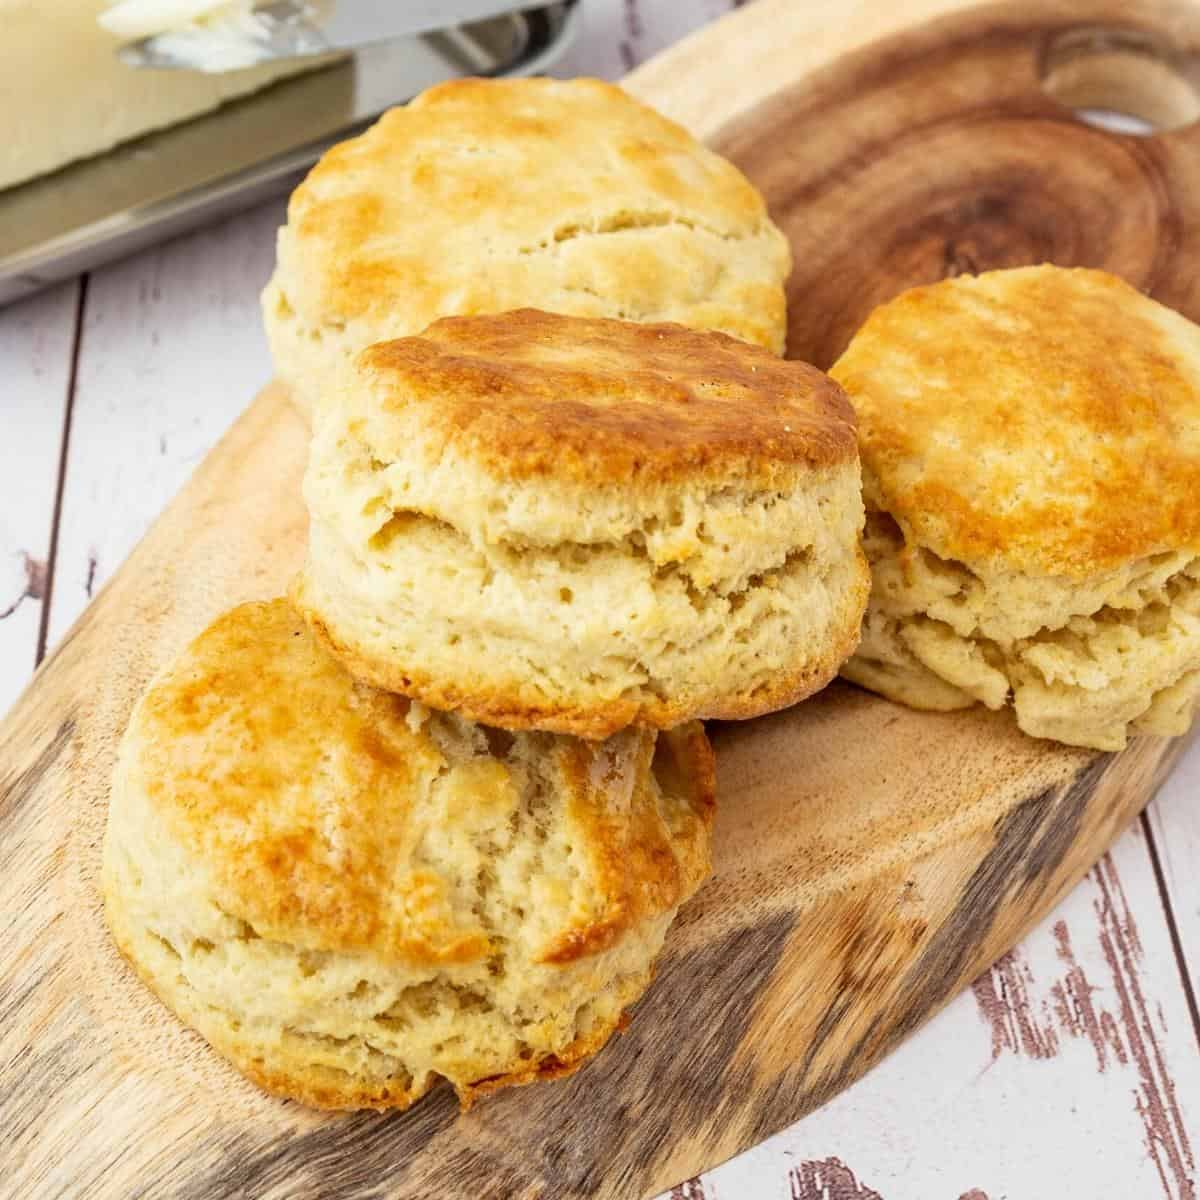 Biscuits on a table.